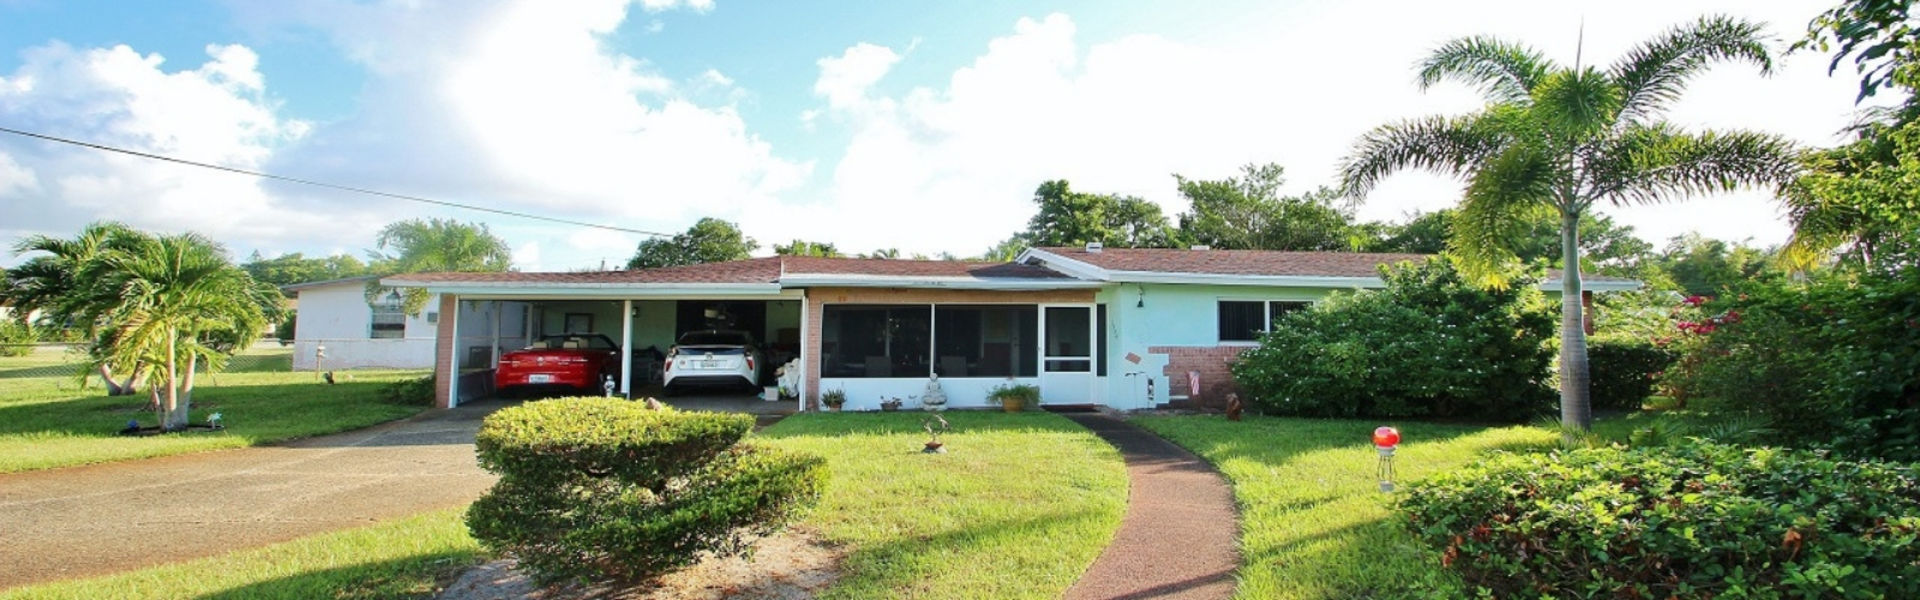 LAUDERDALE VILLAS, 3 BEDROOM / 2 BATHROOM HOME FOR SALE